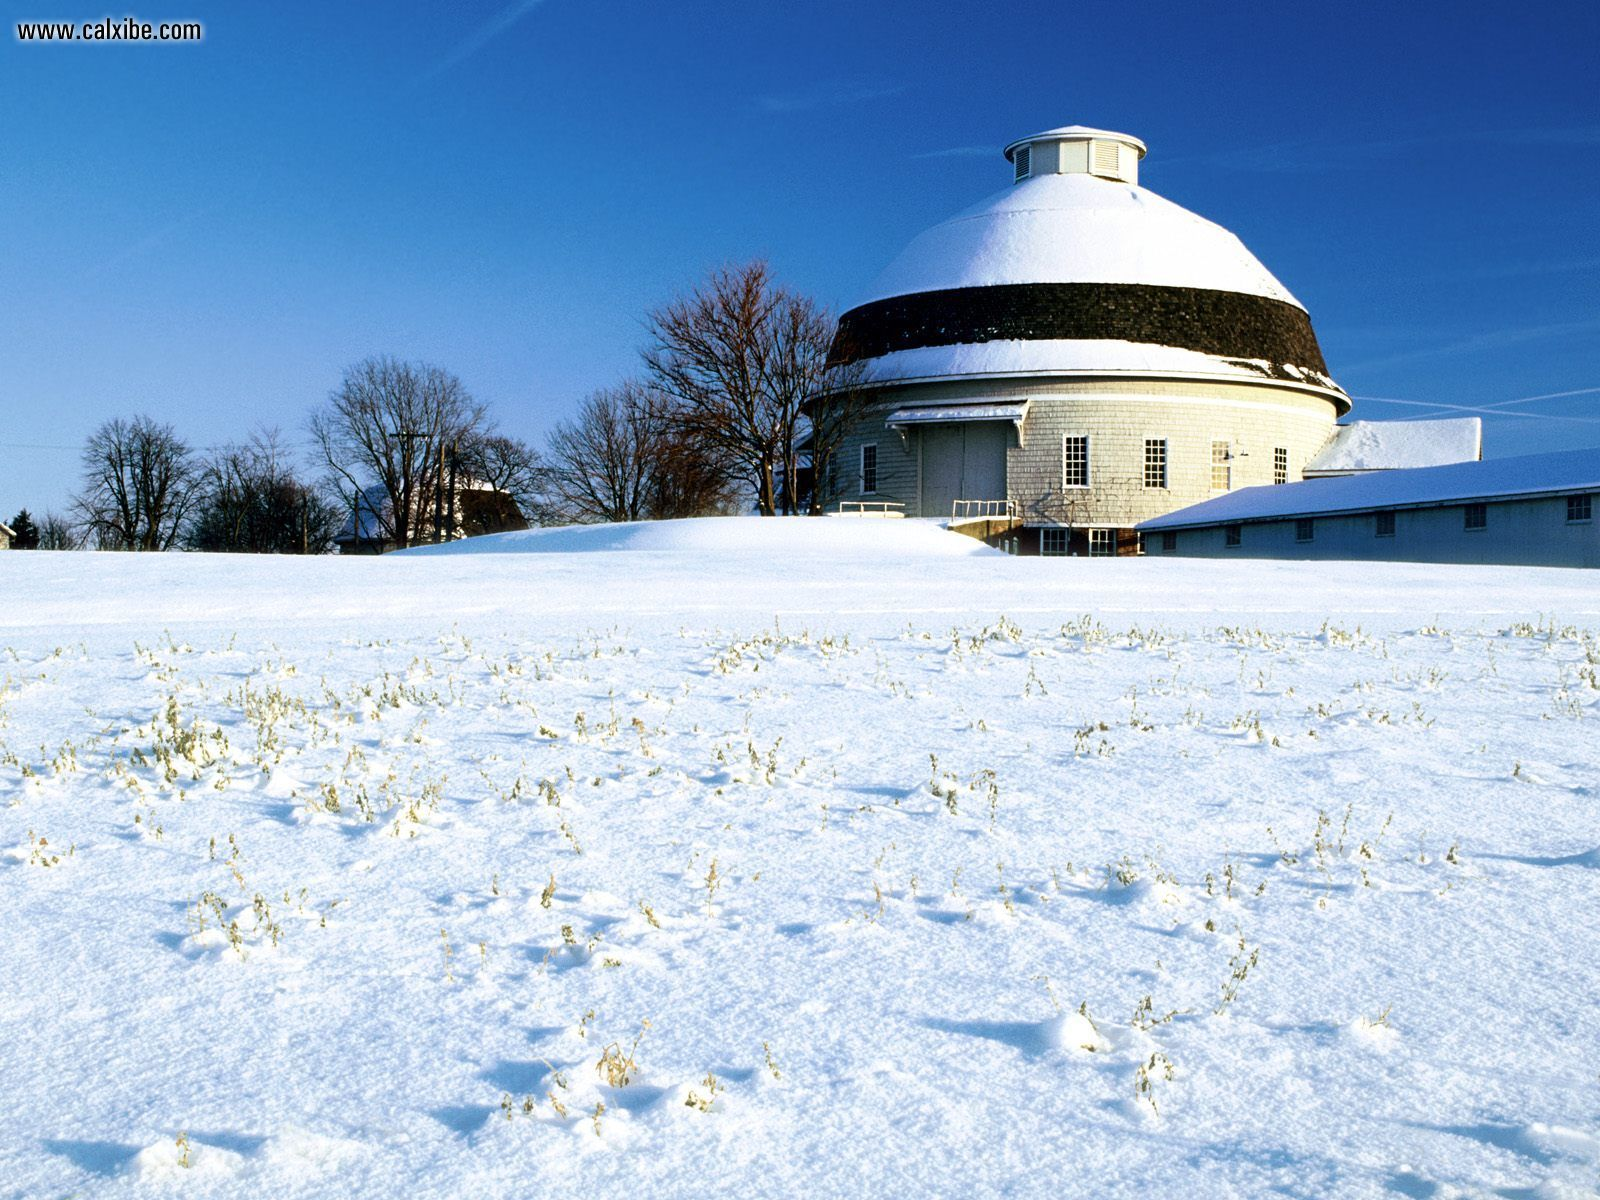 Winter Dome University of Illinois desktop wallpaper nr 4357 1600x1200